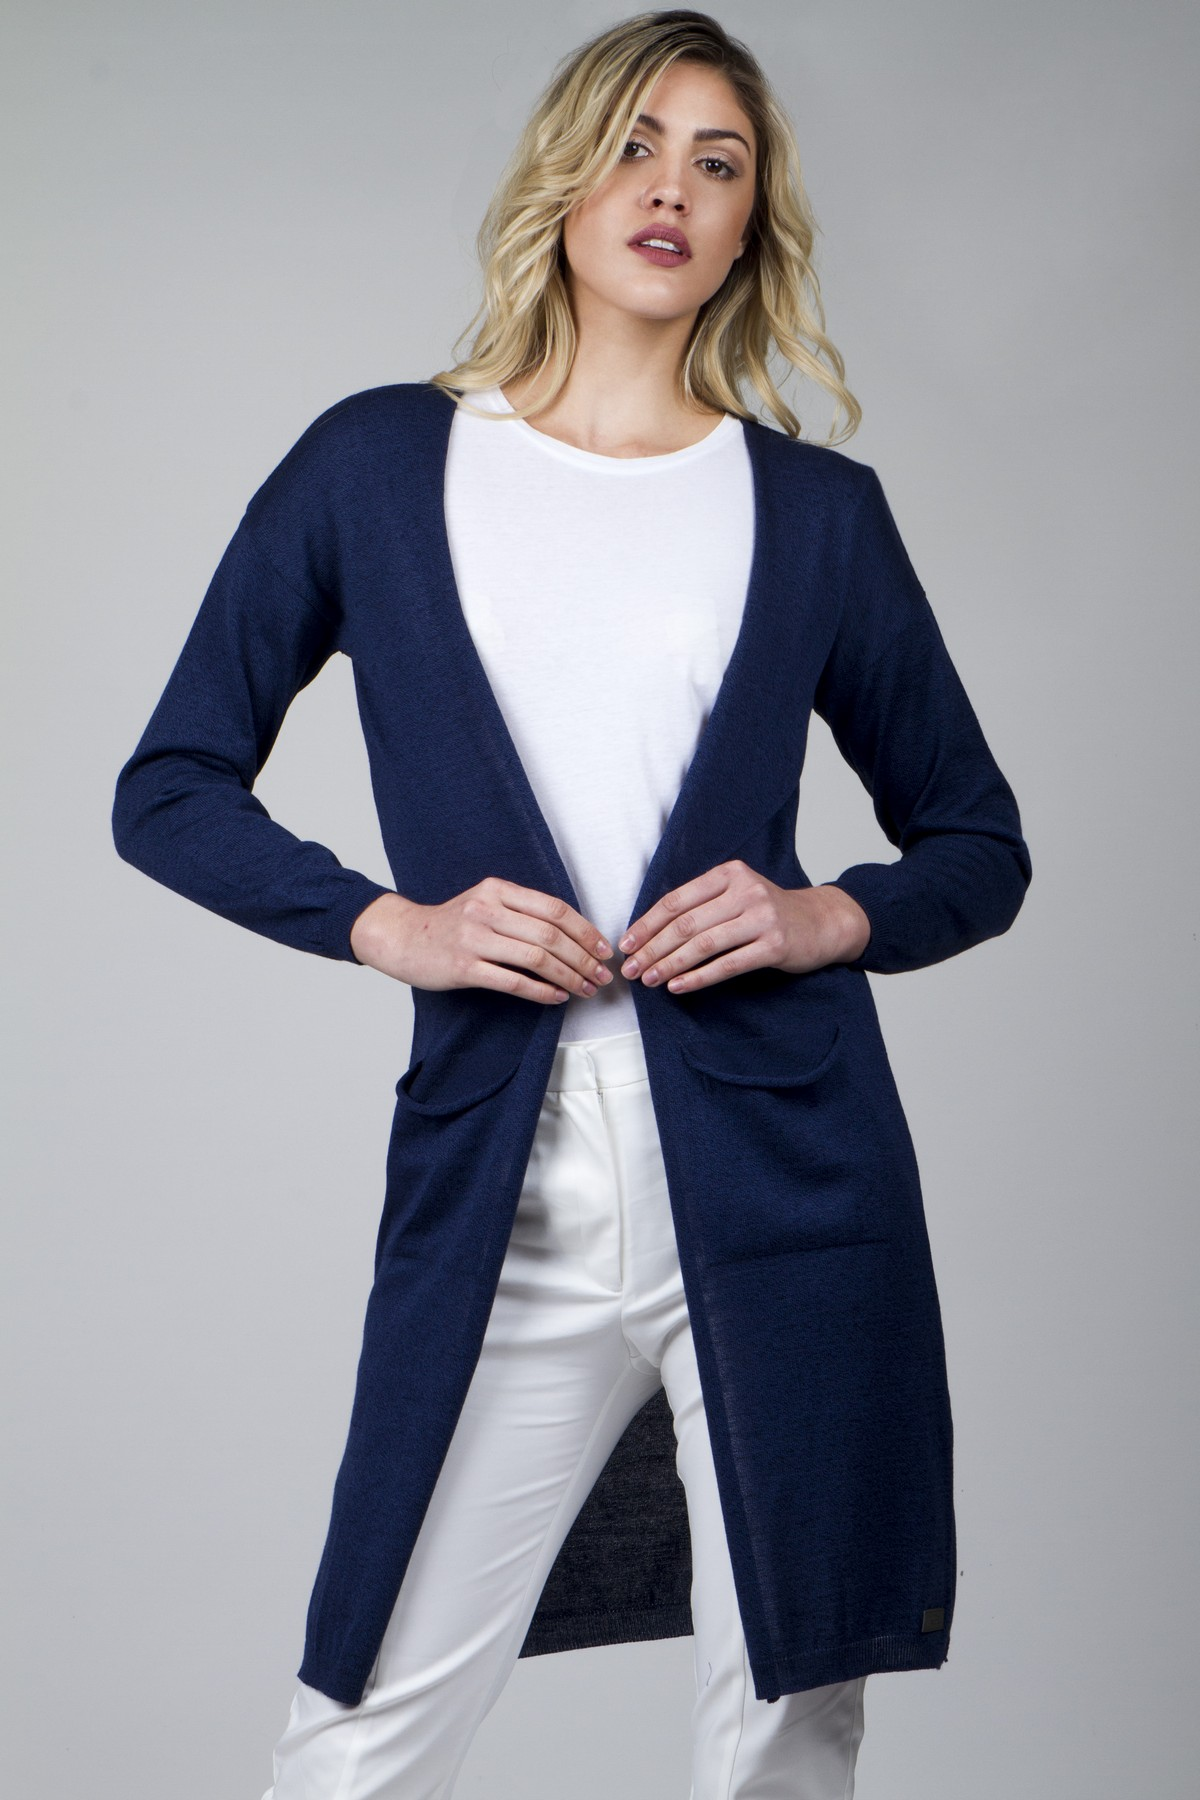 Longline cardigan with side slits - aggel.eu